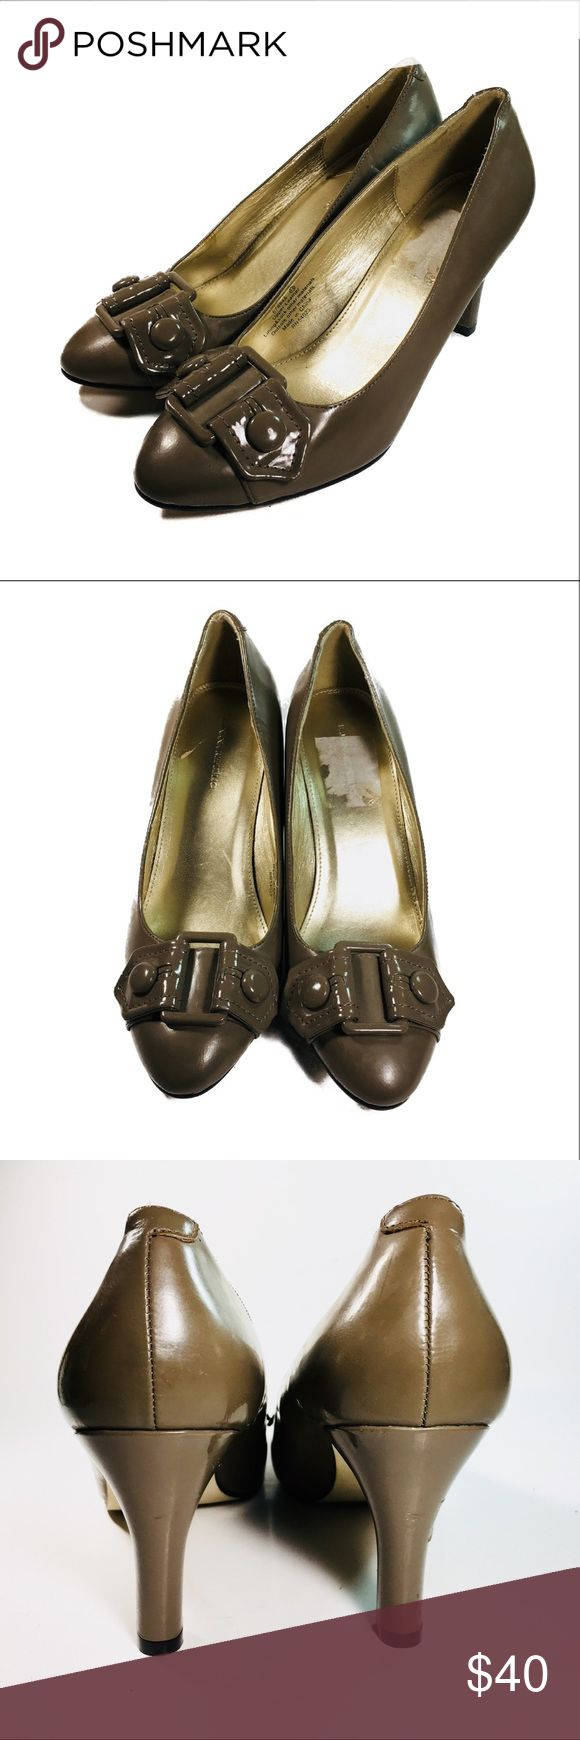 """Banana Republic Taupe Leather High Heel Pumps 7.5 Medium taupe tone Size 7.5 Women's Shoe ~3.5"""" across ball of foot 3"""" heel Button Buckle Toe Accent Heel scuffs / dents as pictured Small tear left insole, sticker right insole Leather upper shows minor wear, soles and heels in good condition. Lighting makes photos look very brown, but they are definitely taupe. Image from back of shoes is closest to actual color. It's almost a gray taupe. Buyer understands color may vary depending on lighting…"""